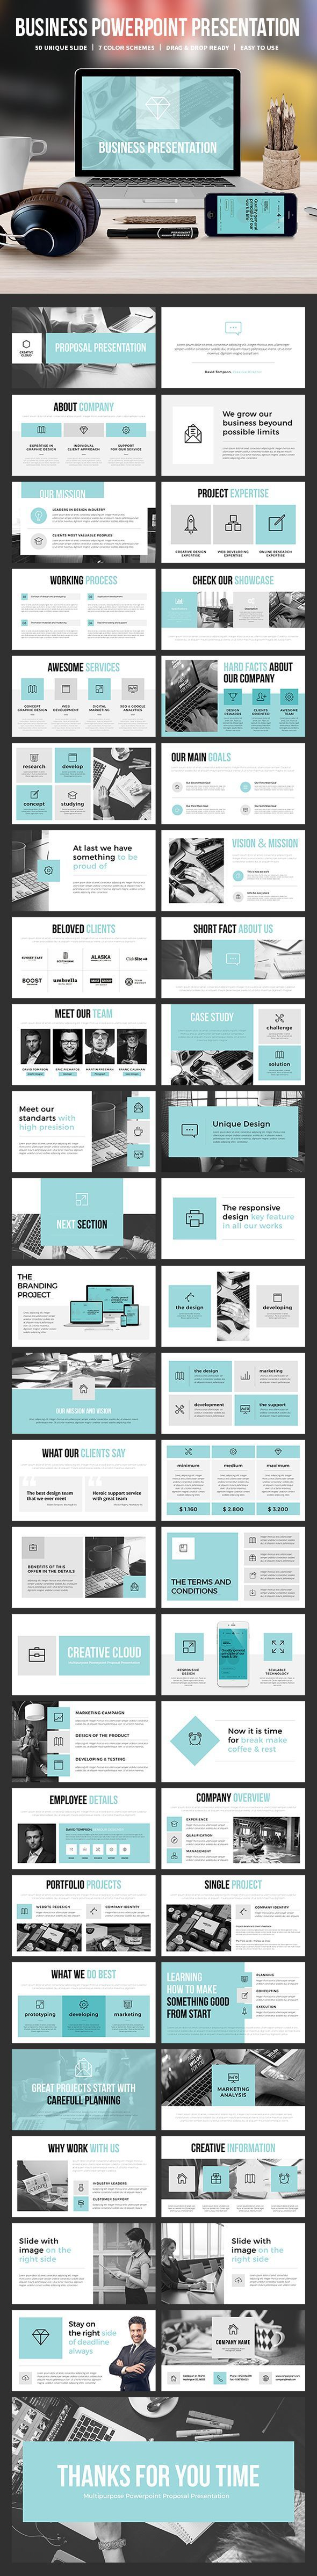 Business powerpoint template business powerpoint templates ppt business powerpoint template business powerpoint templates toneelgroepblik Images